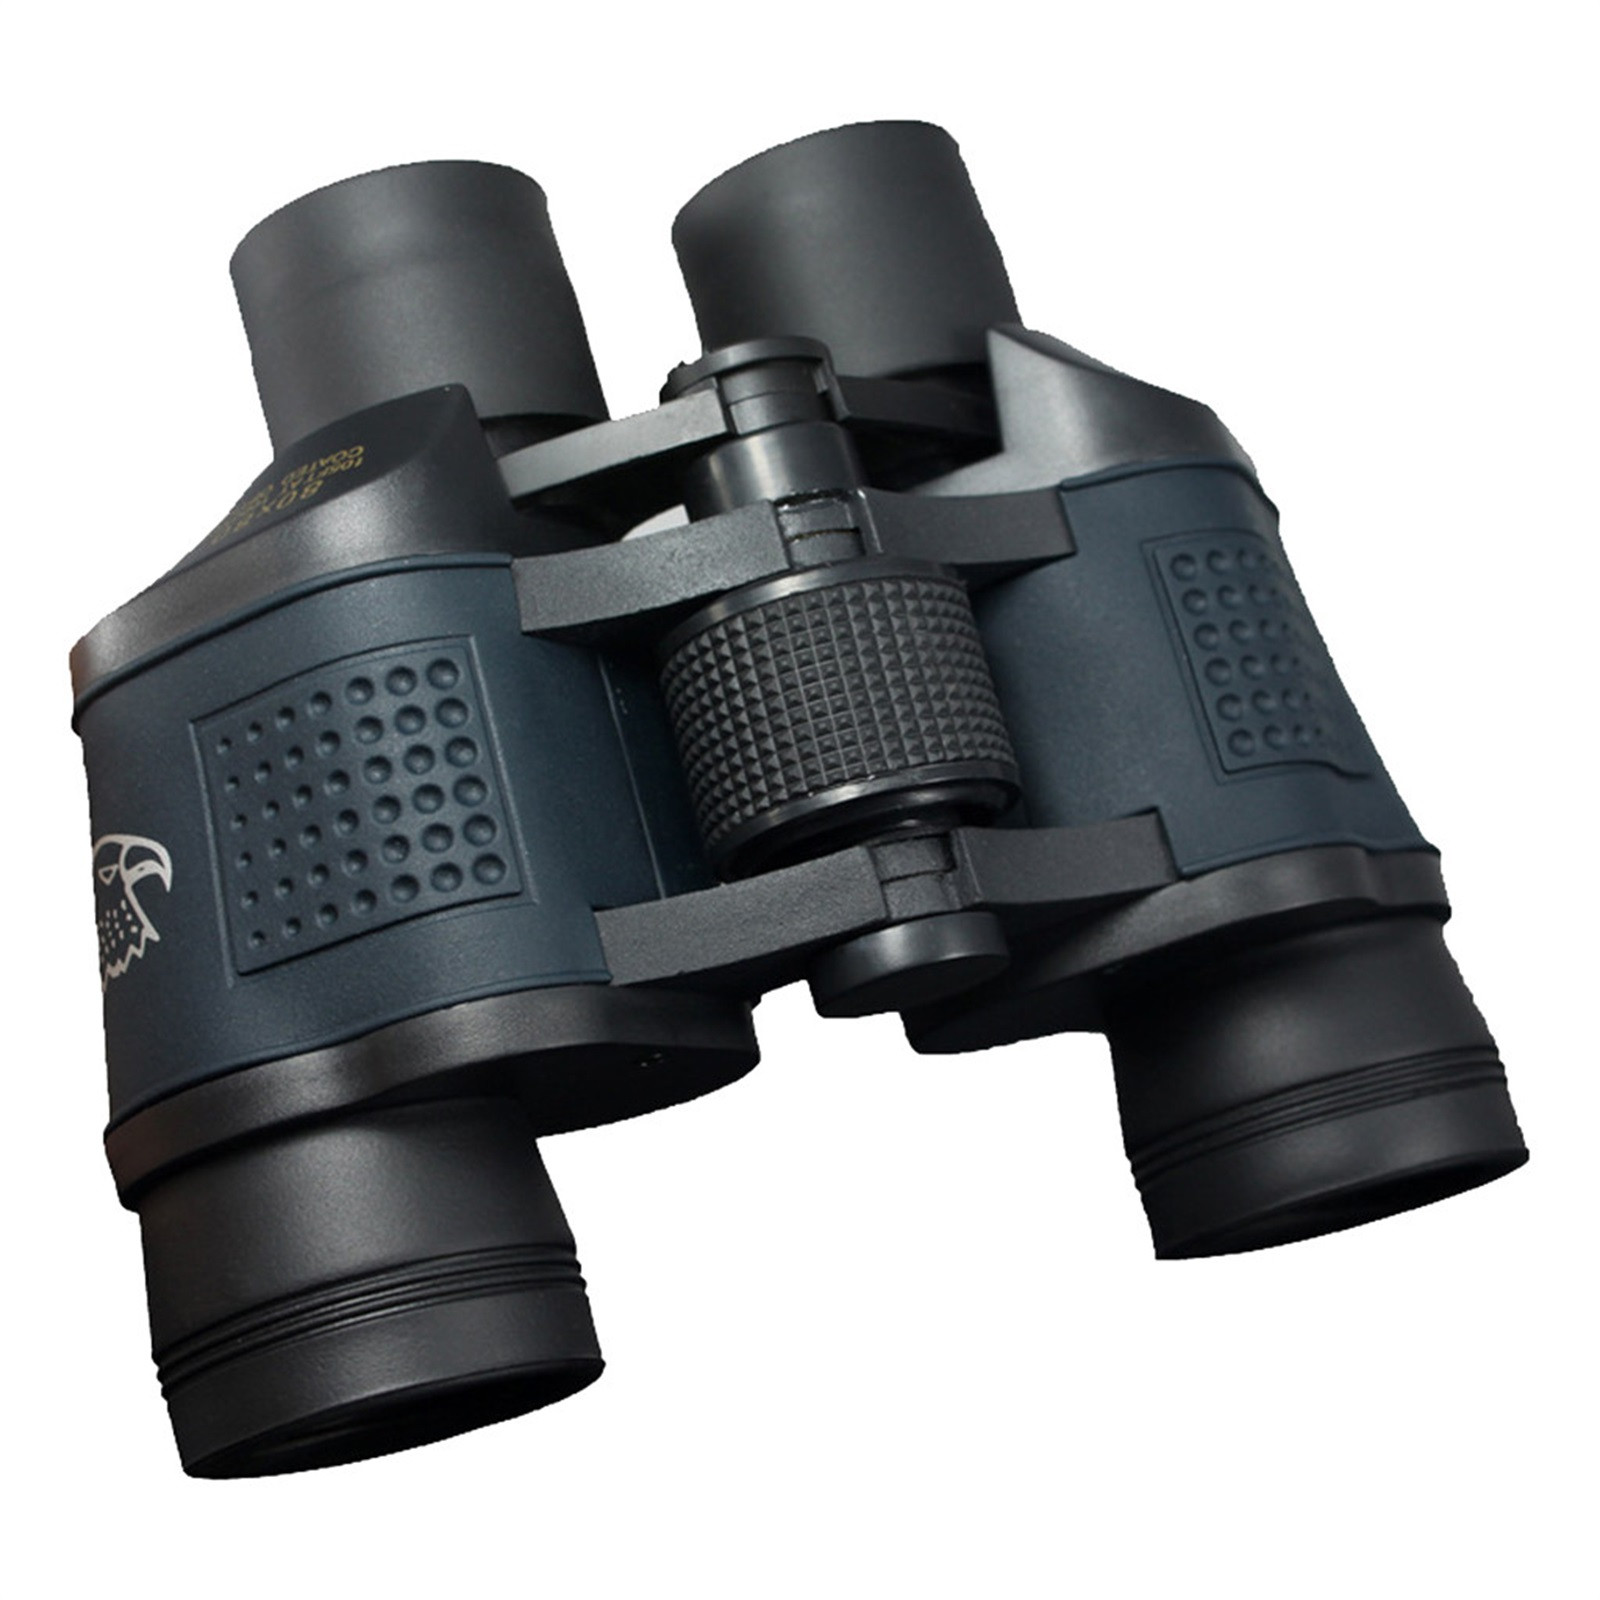 Astronomical Pris-m Binoculars Telescope Science Education Cognitive Professional Toy Camping Hiking Students 60x60 Hd#XX